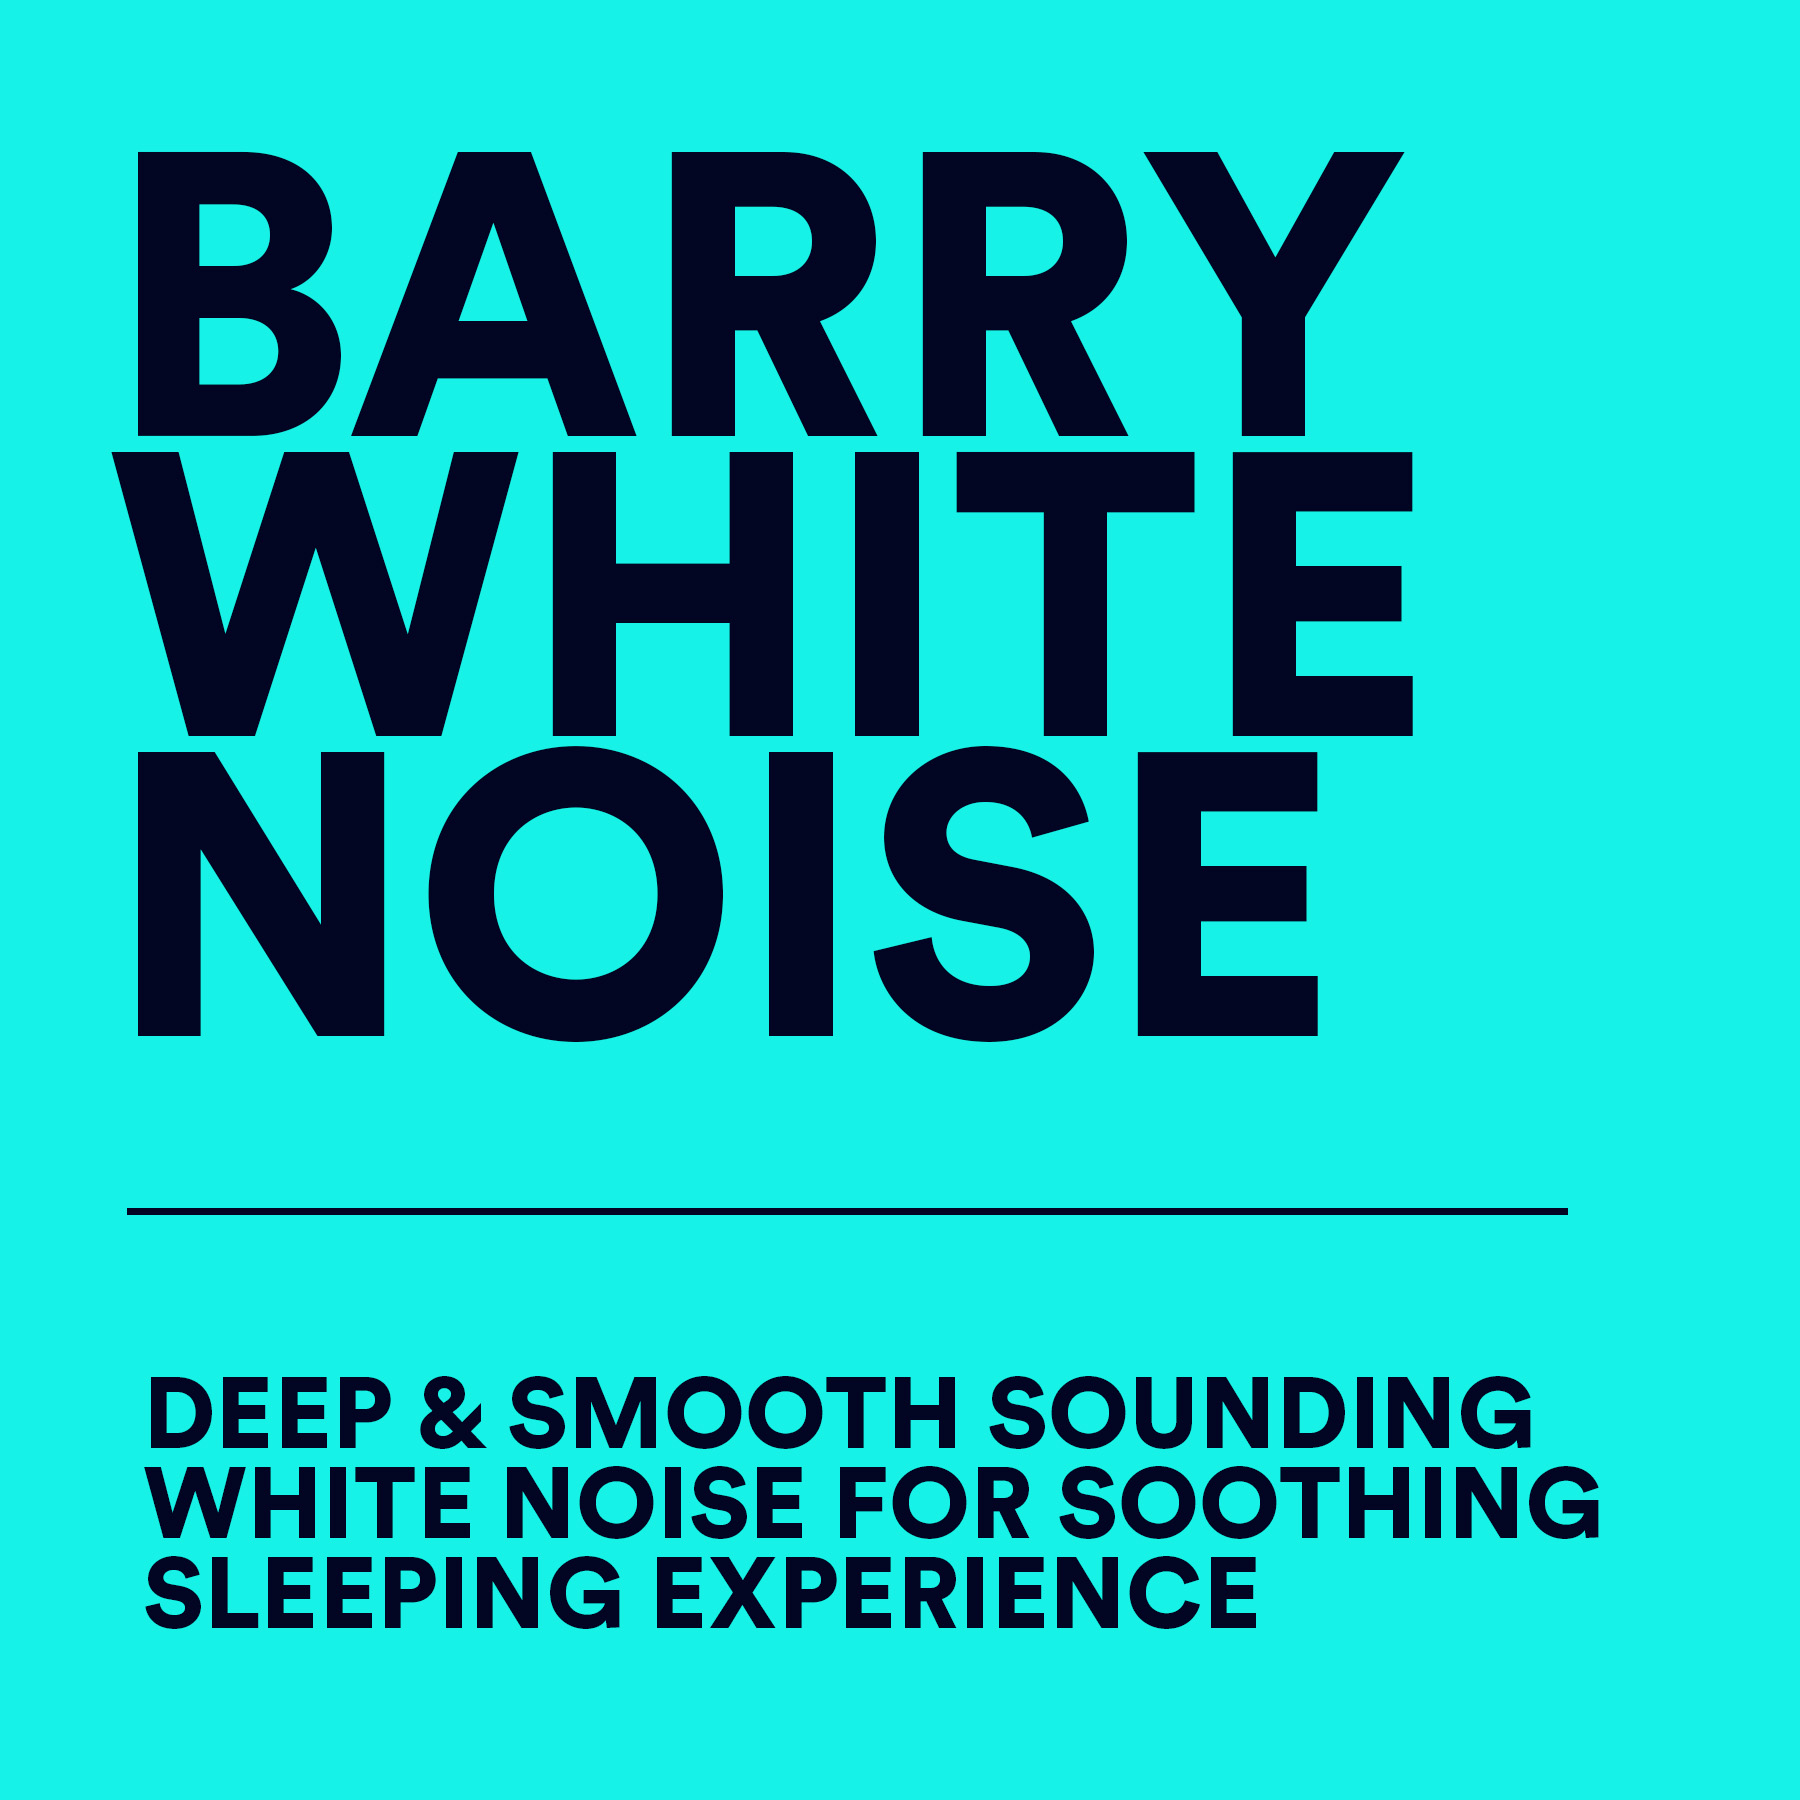 Keep up with our latest releases. - Coming soon is an album filled with relaxing deep & smooth white noise that will help you doze off more easilly.